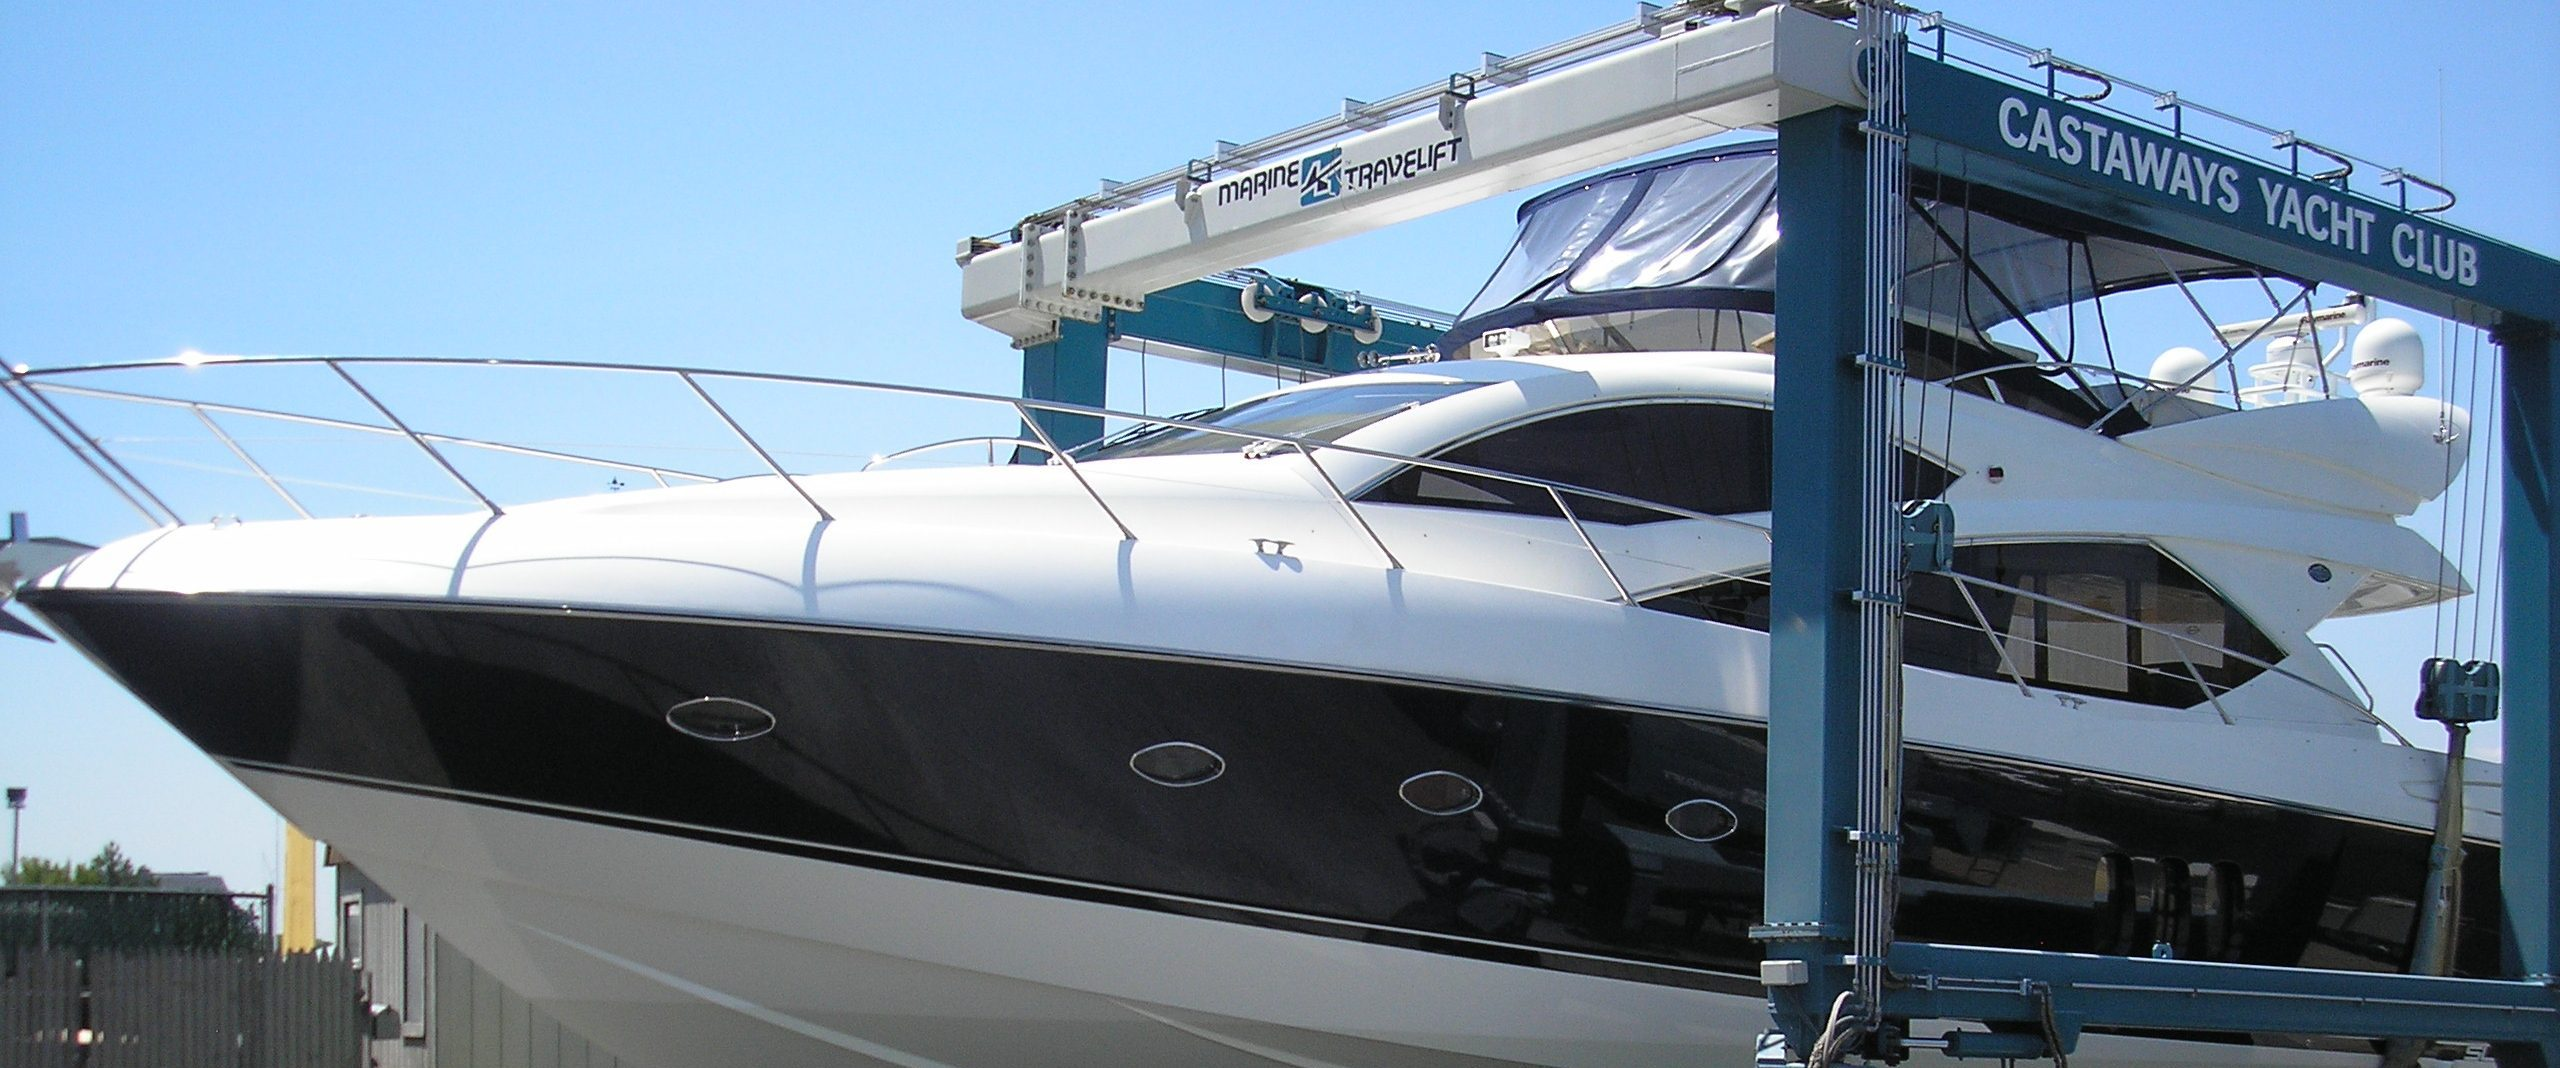 Yacht being stored